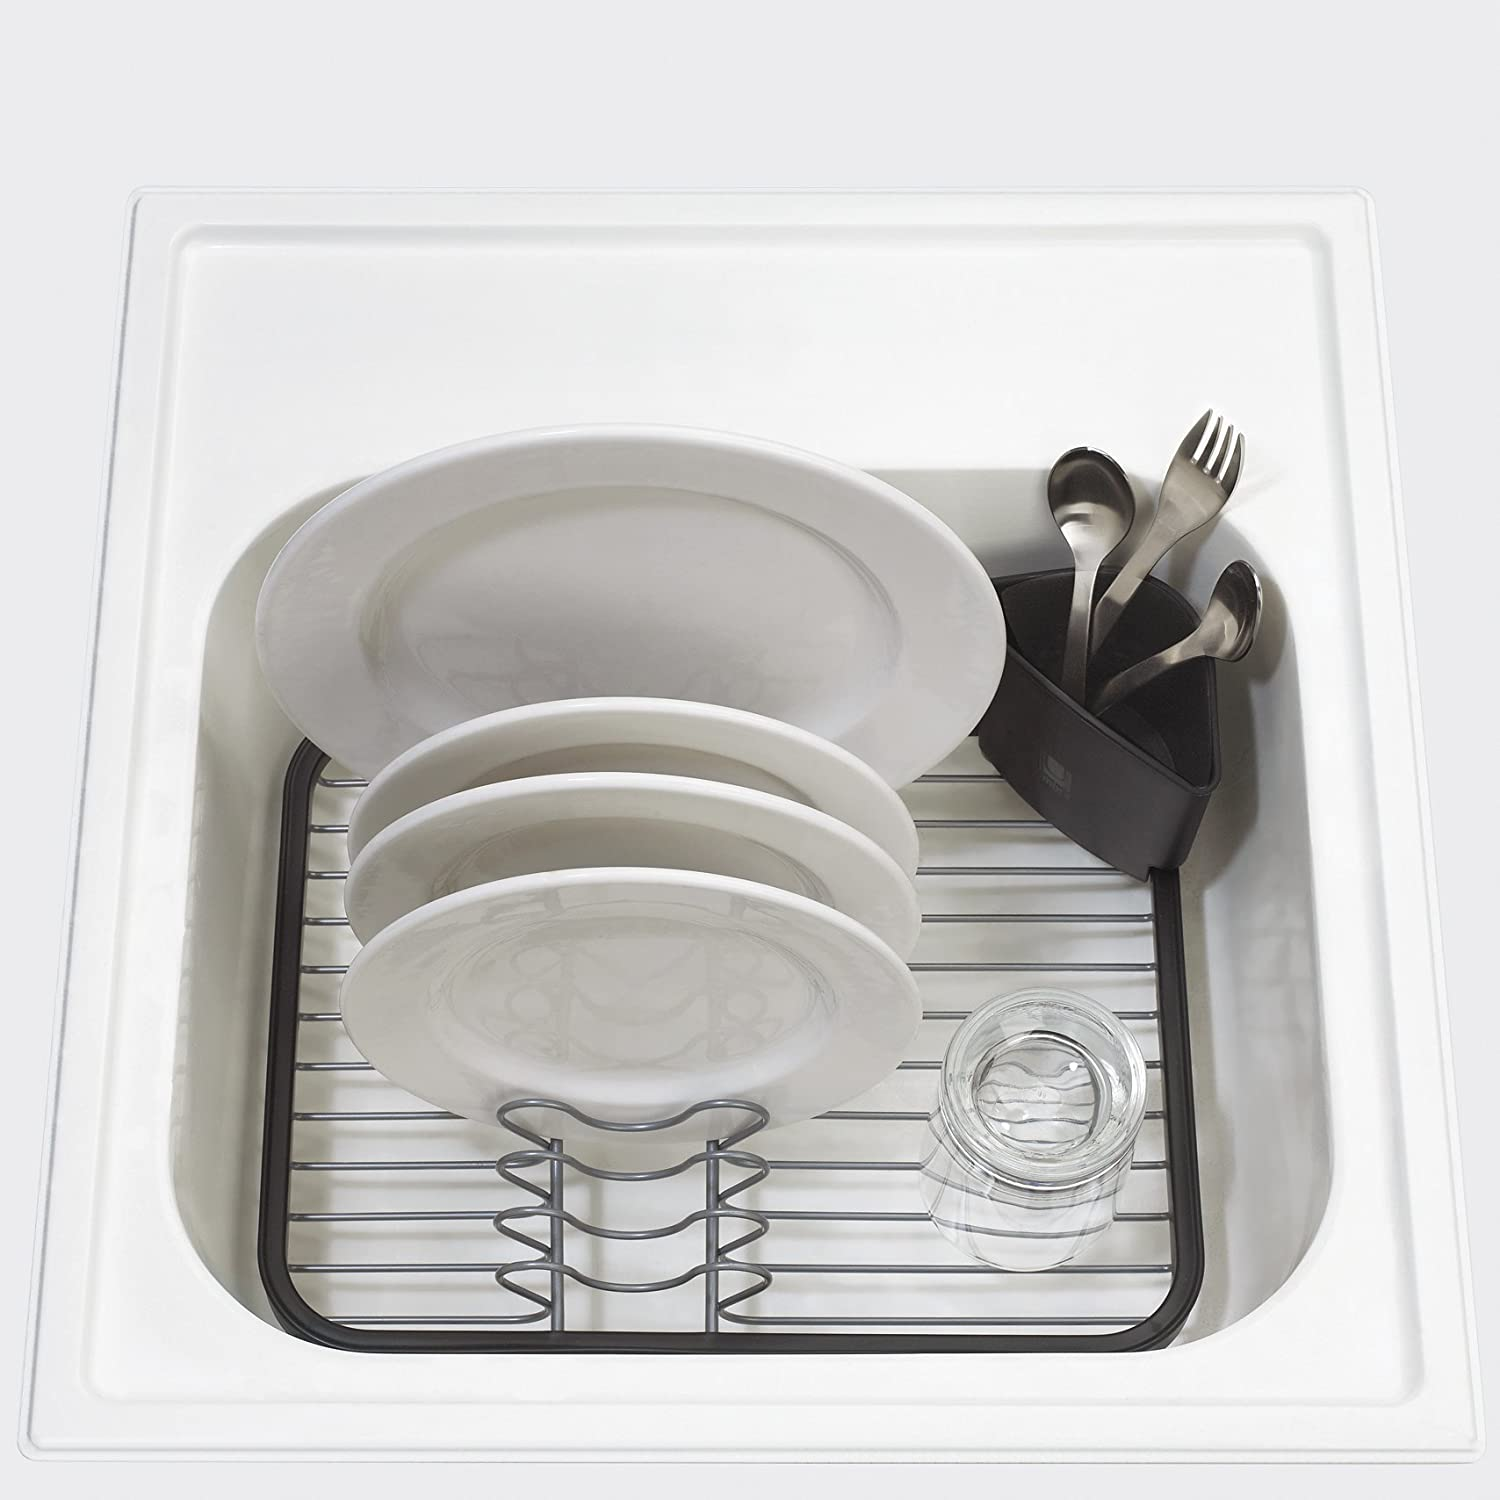 Wire Dish Drip Dry Rack Sink Grid Utensil Drainer Movable